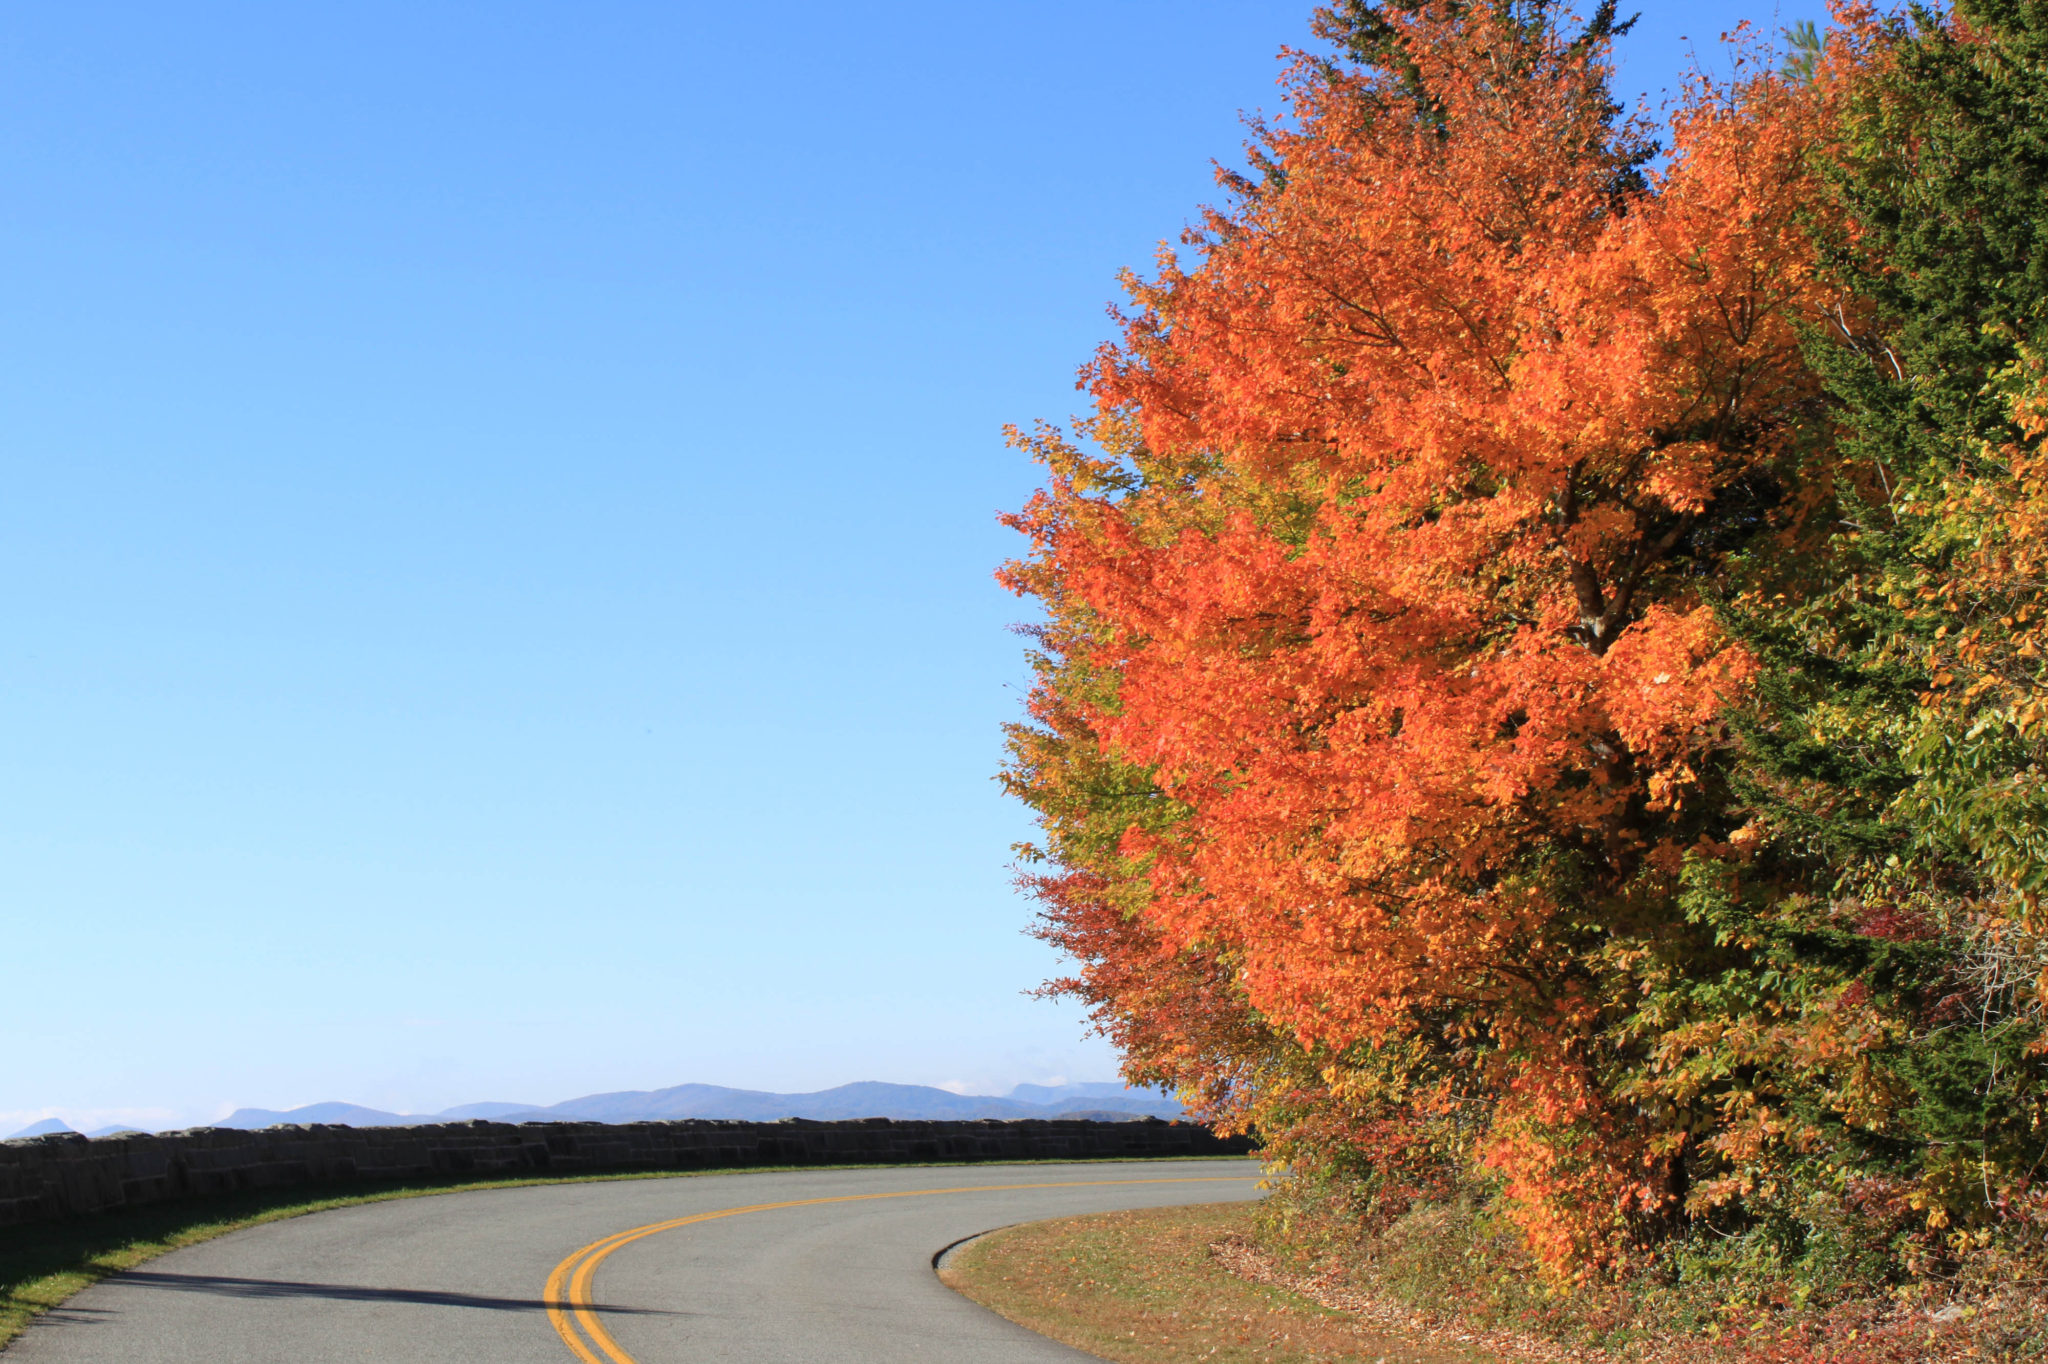 fall foliage on the Blue Ridge Parkway near Blowing Rock NC